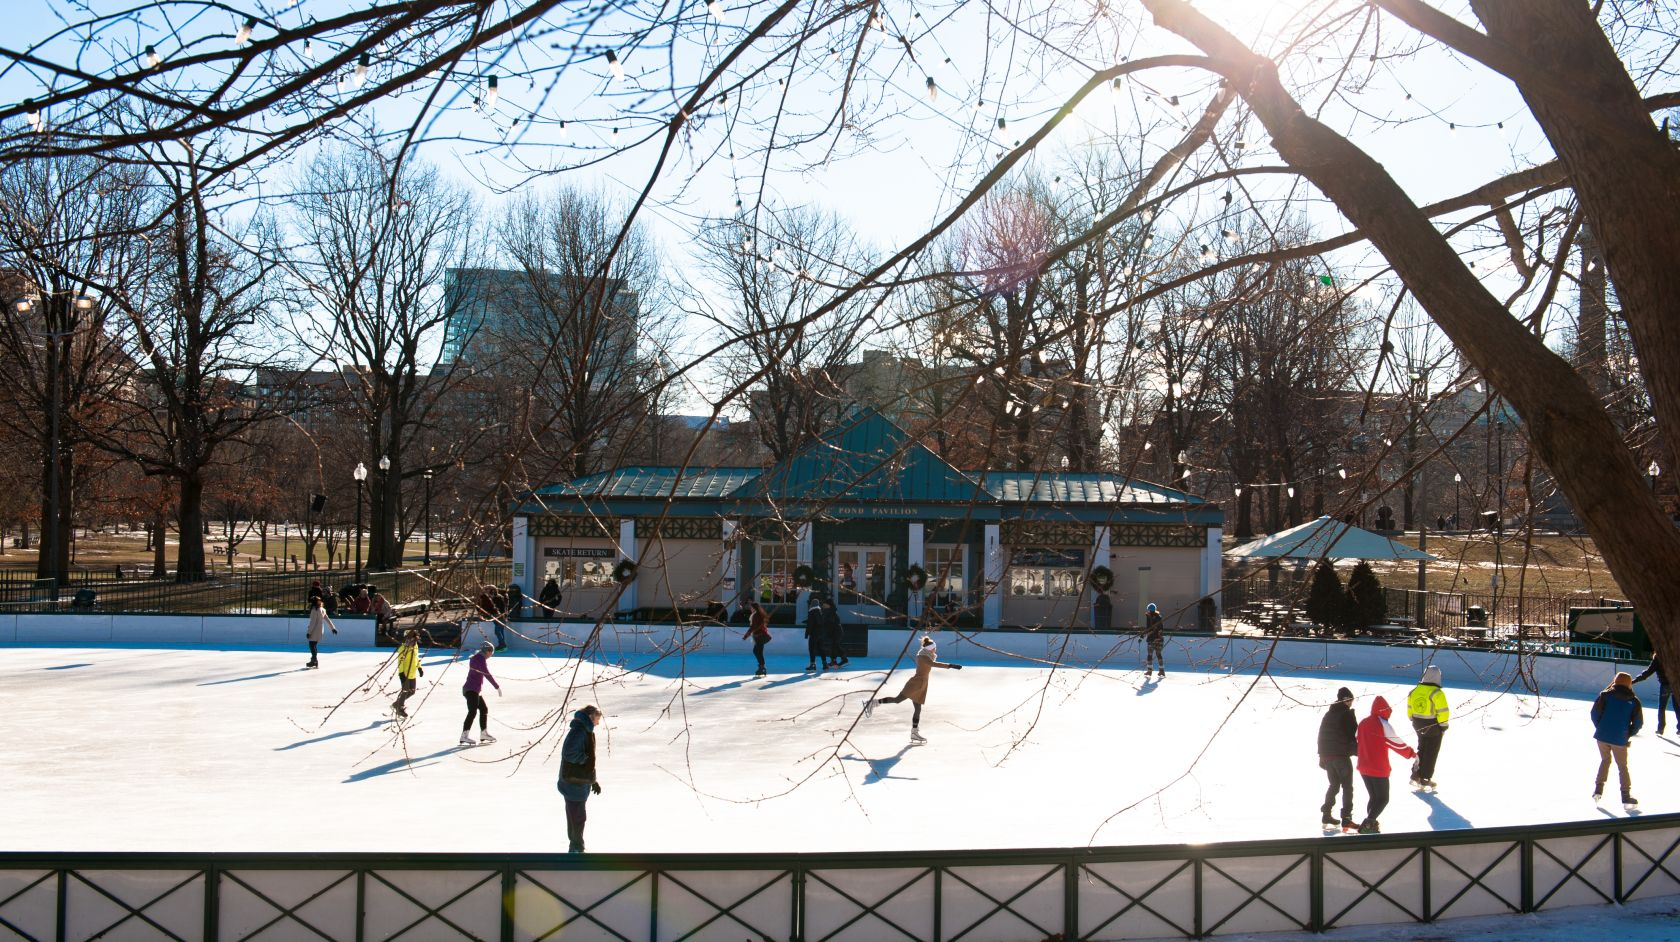 boston winter ice skating at the frog pond near the inn at longwood medical